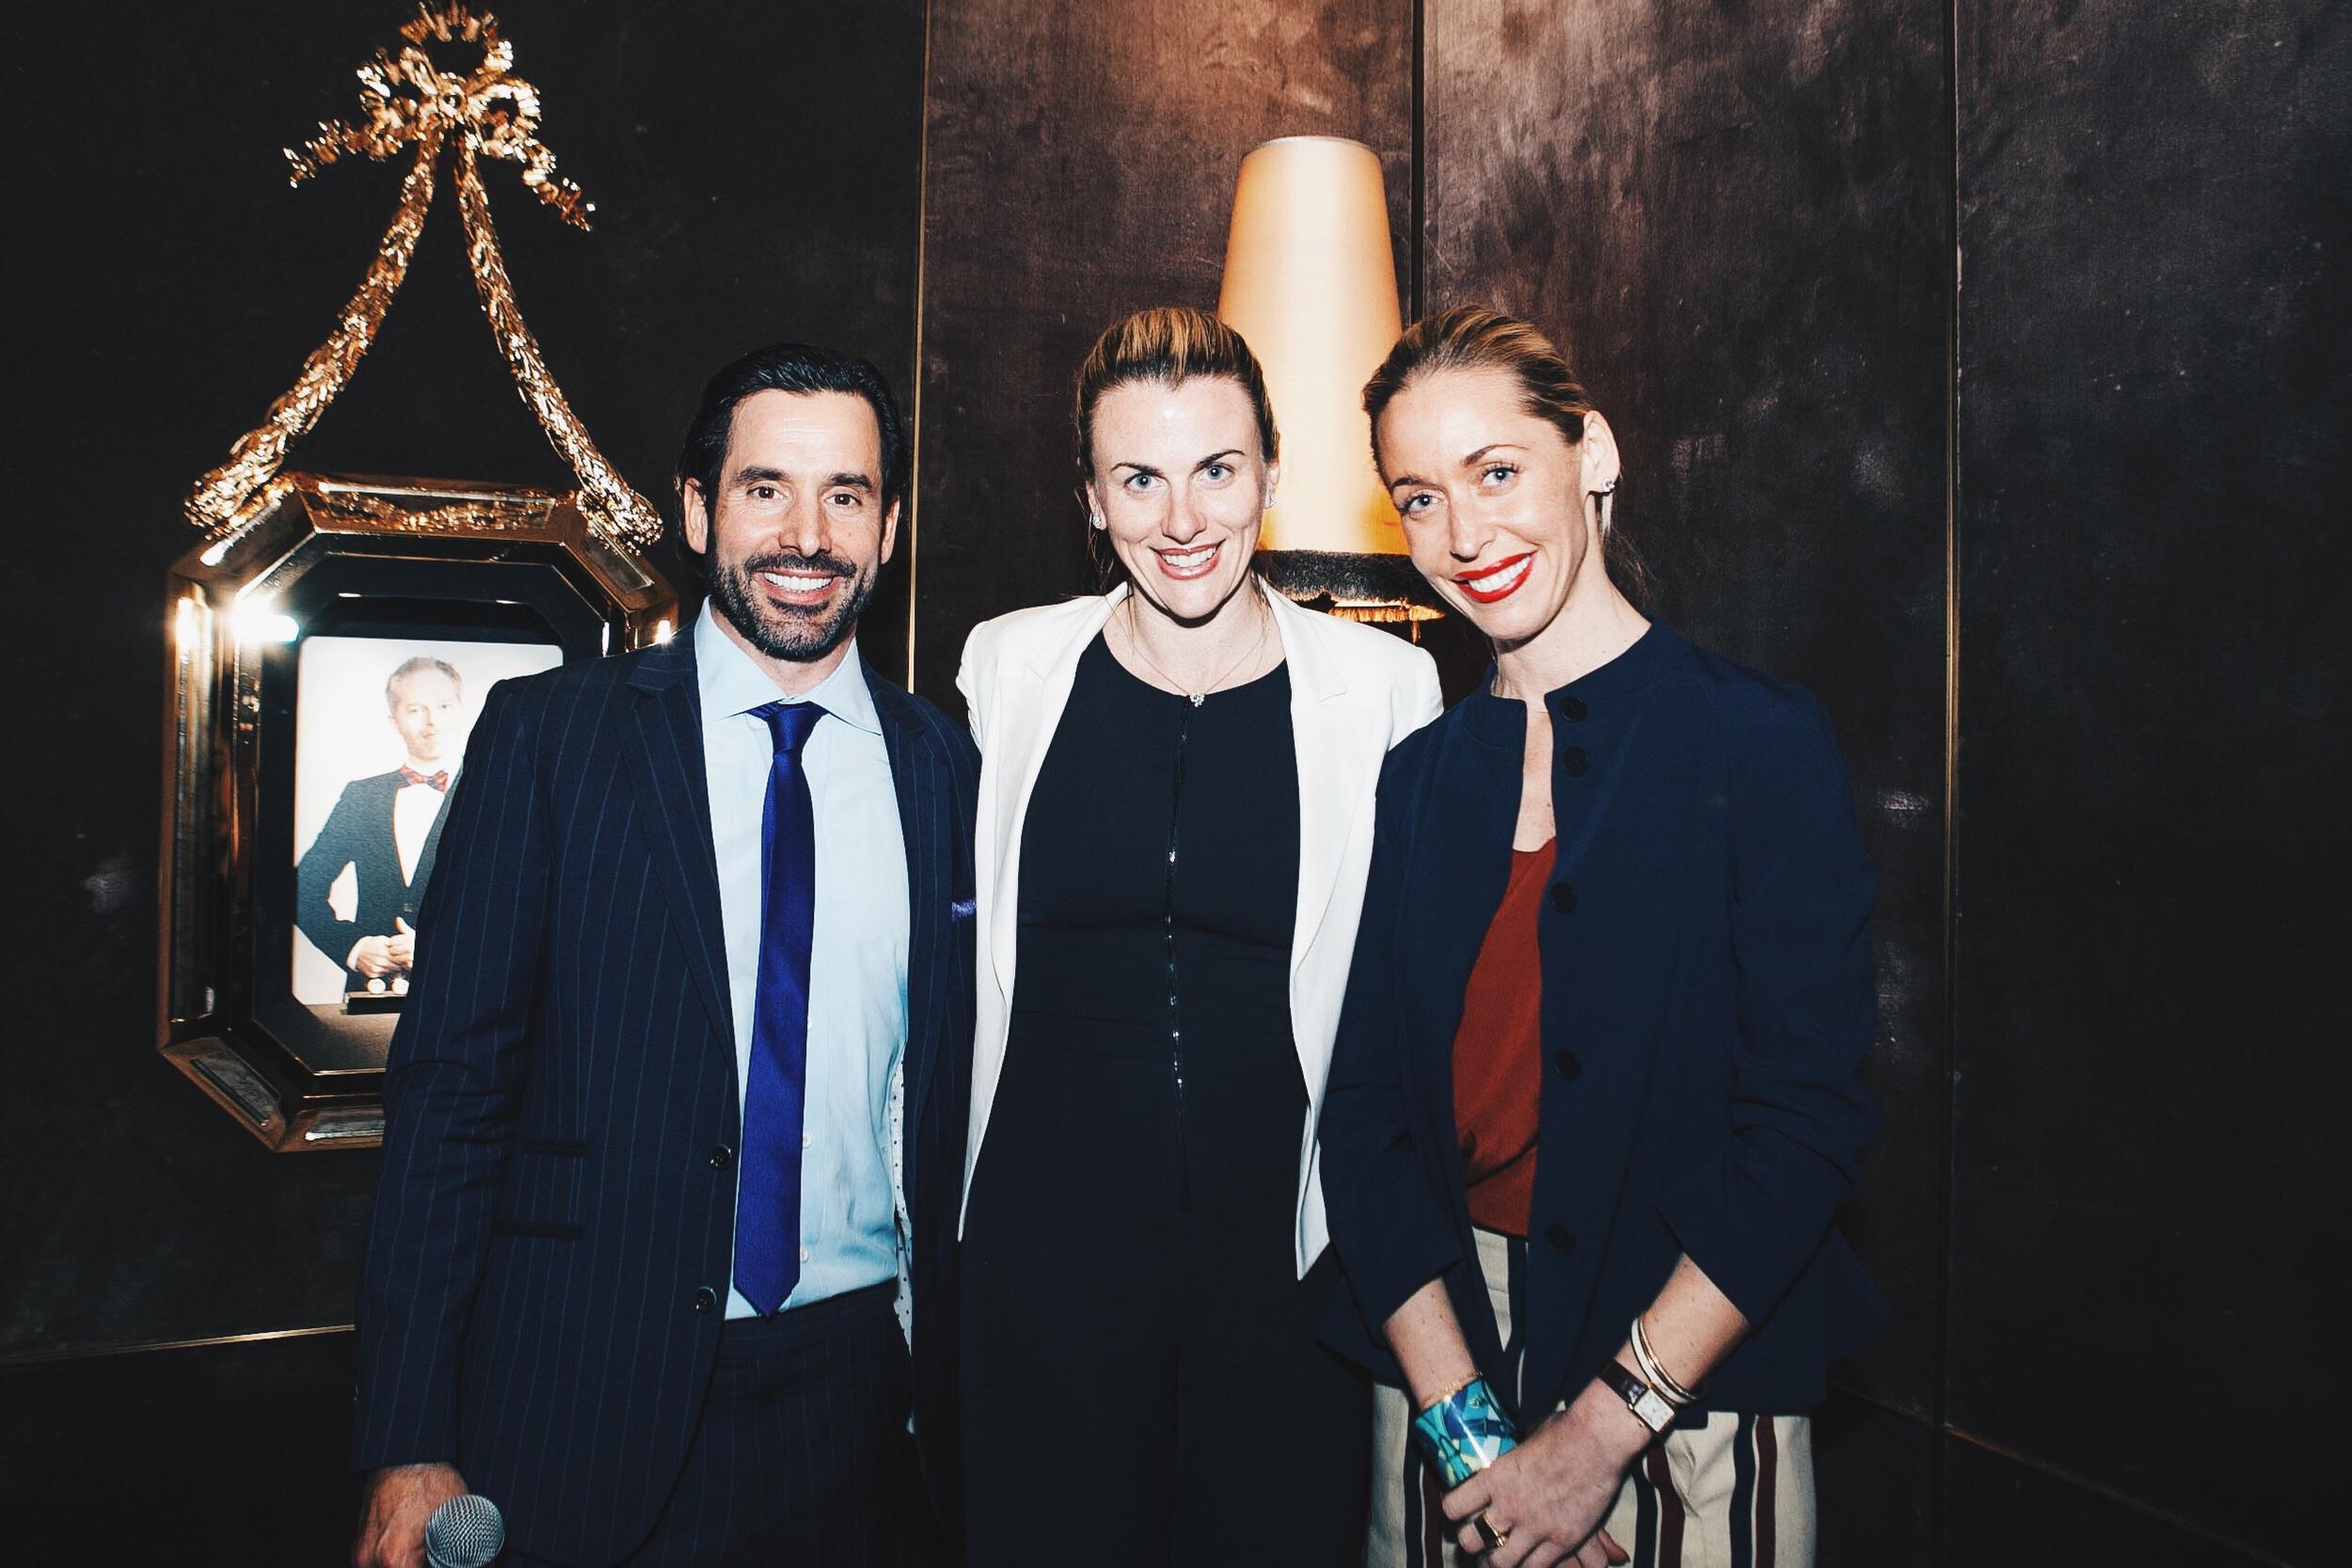 Chris Gialanella with Laura Dowling and Nicole Oge